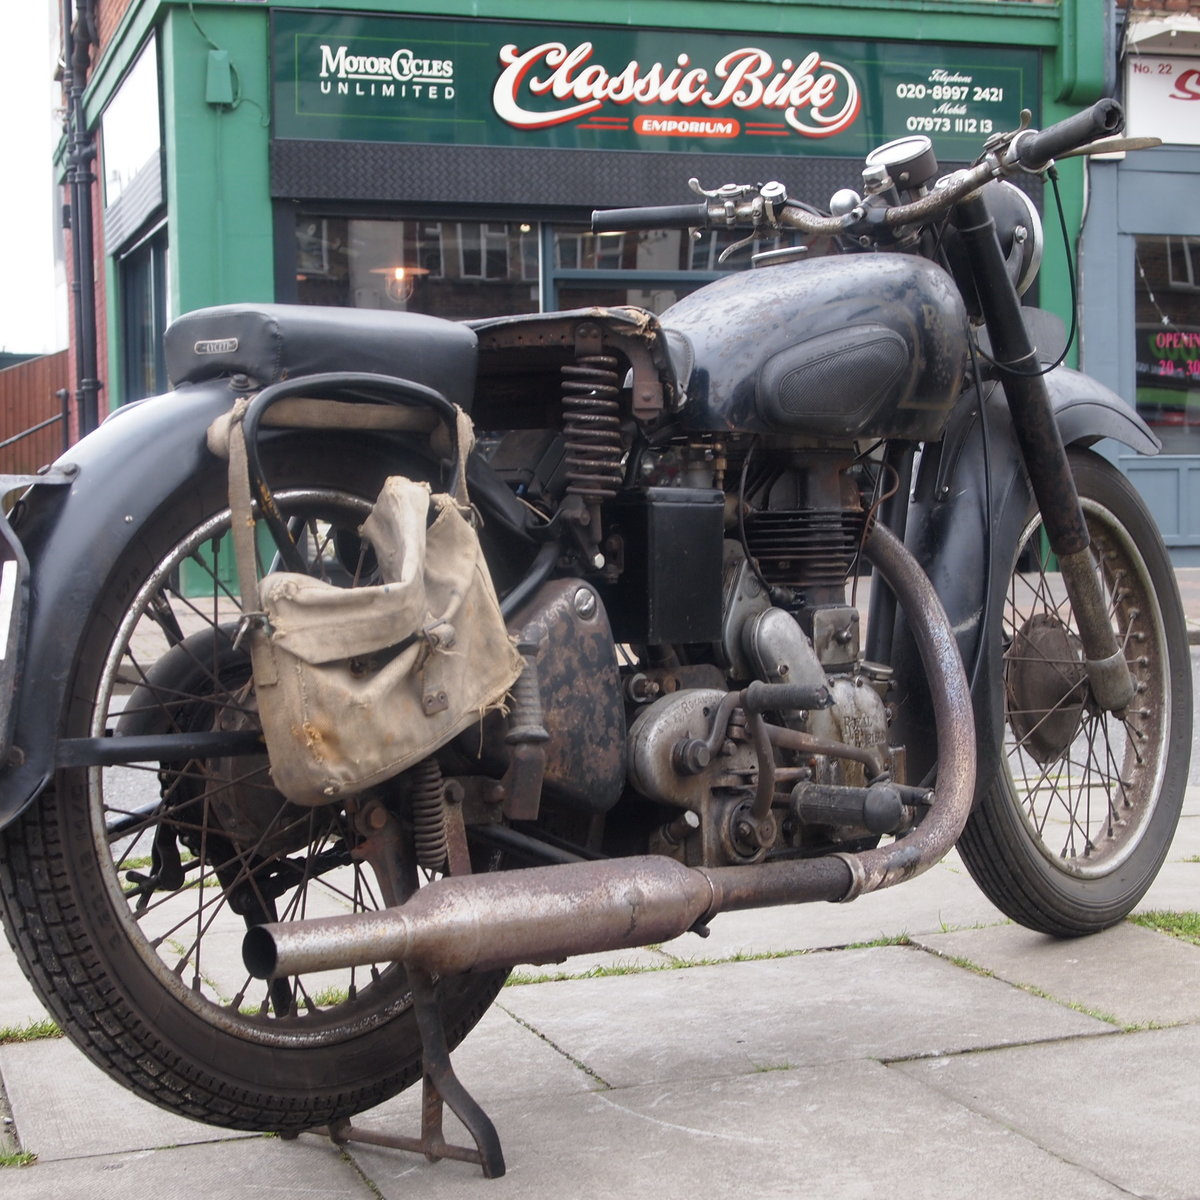 1949 Royal Enfield Model G 350cc Original & Unmolested. For Sale (picture 1 of 12)